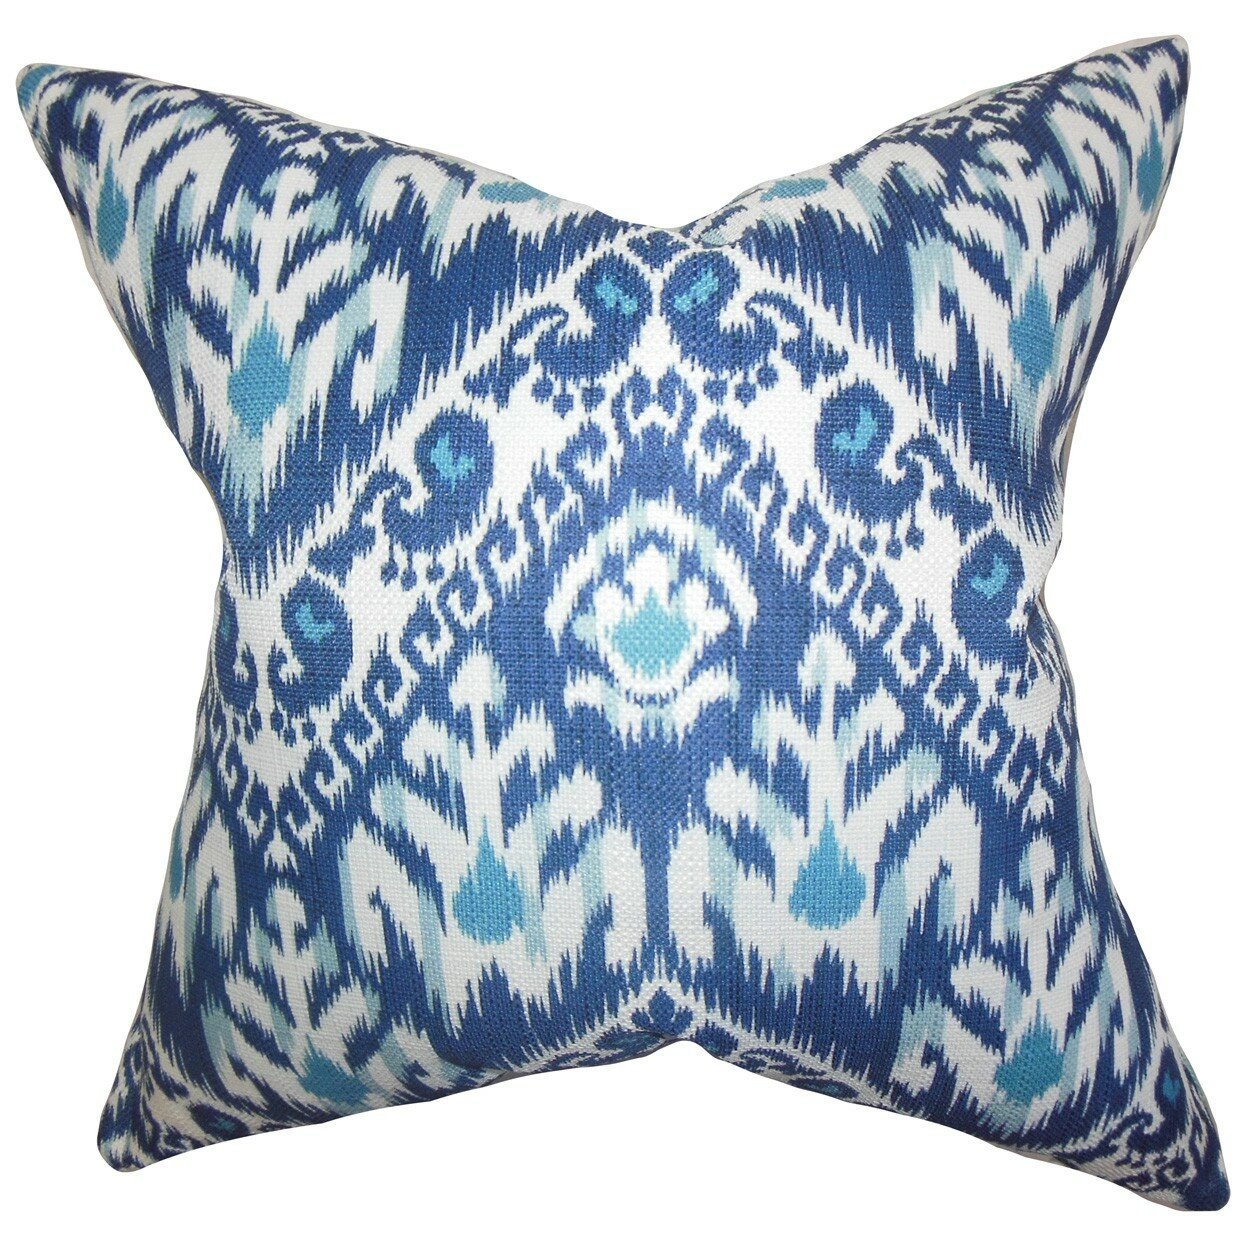 Decorative Pillow Wayfair : The Pillow Collection Rafiq Ikat Throw Pillow & Reviews Wayfair